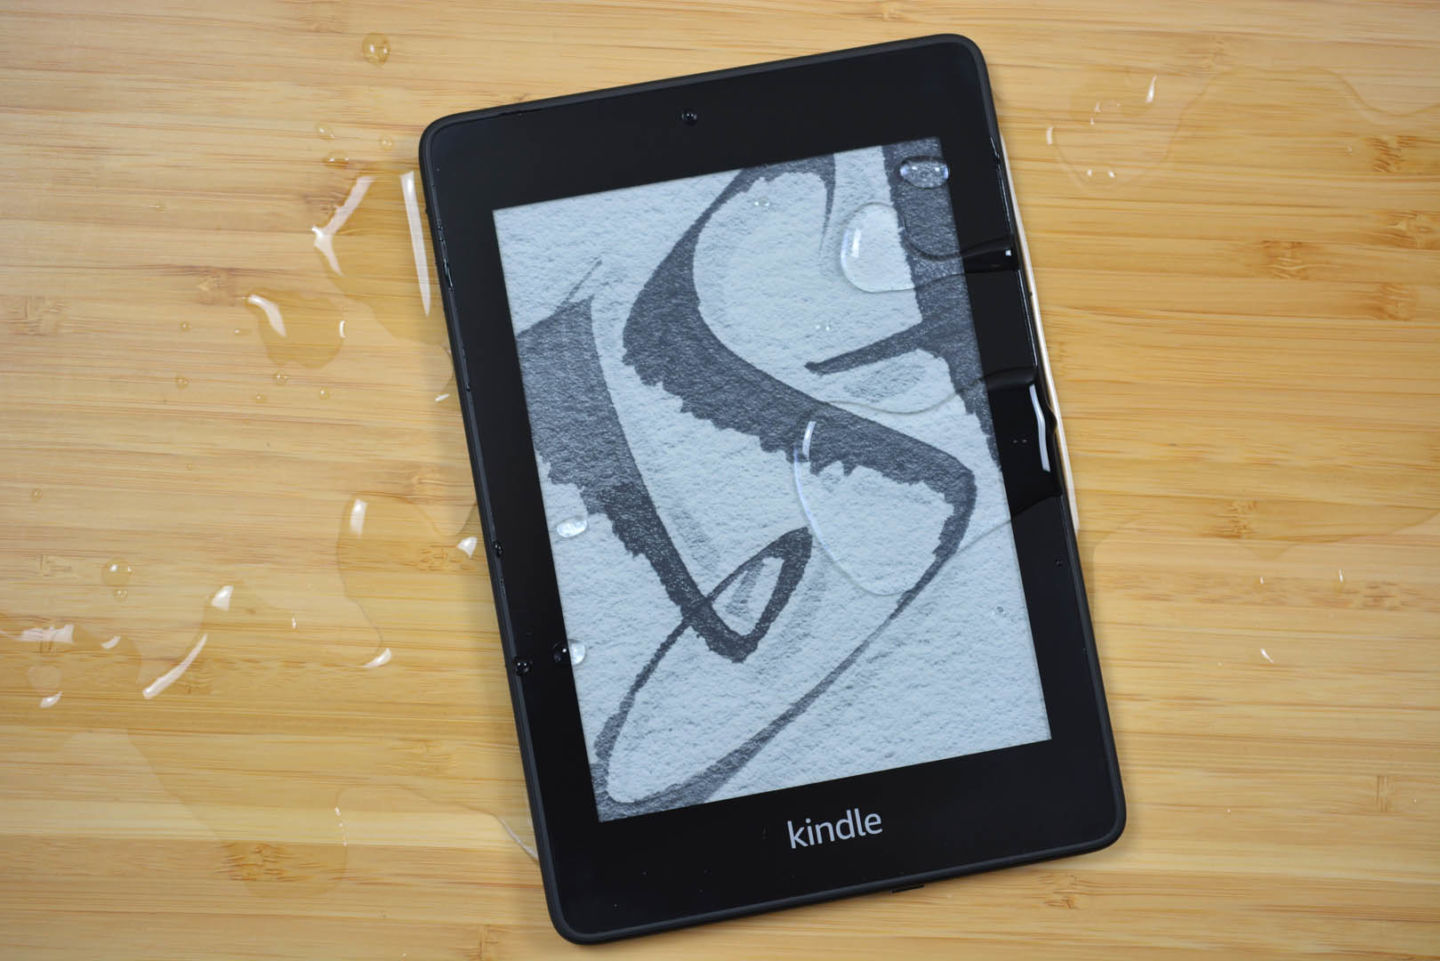 Amazon's waterproof Kindle Paperwhite.